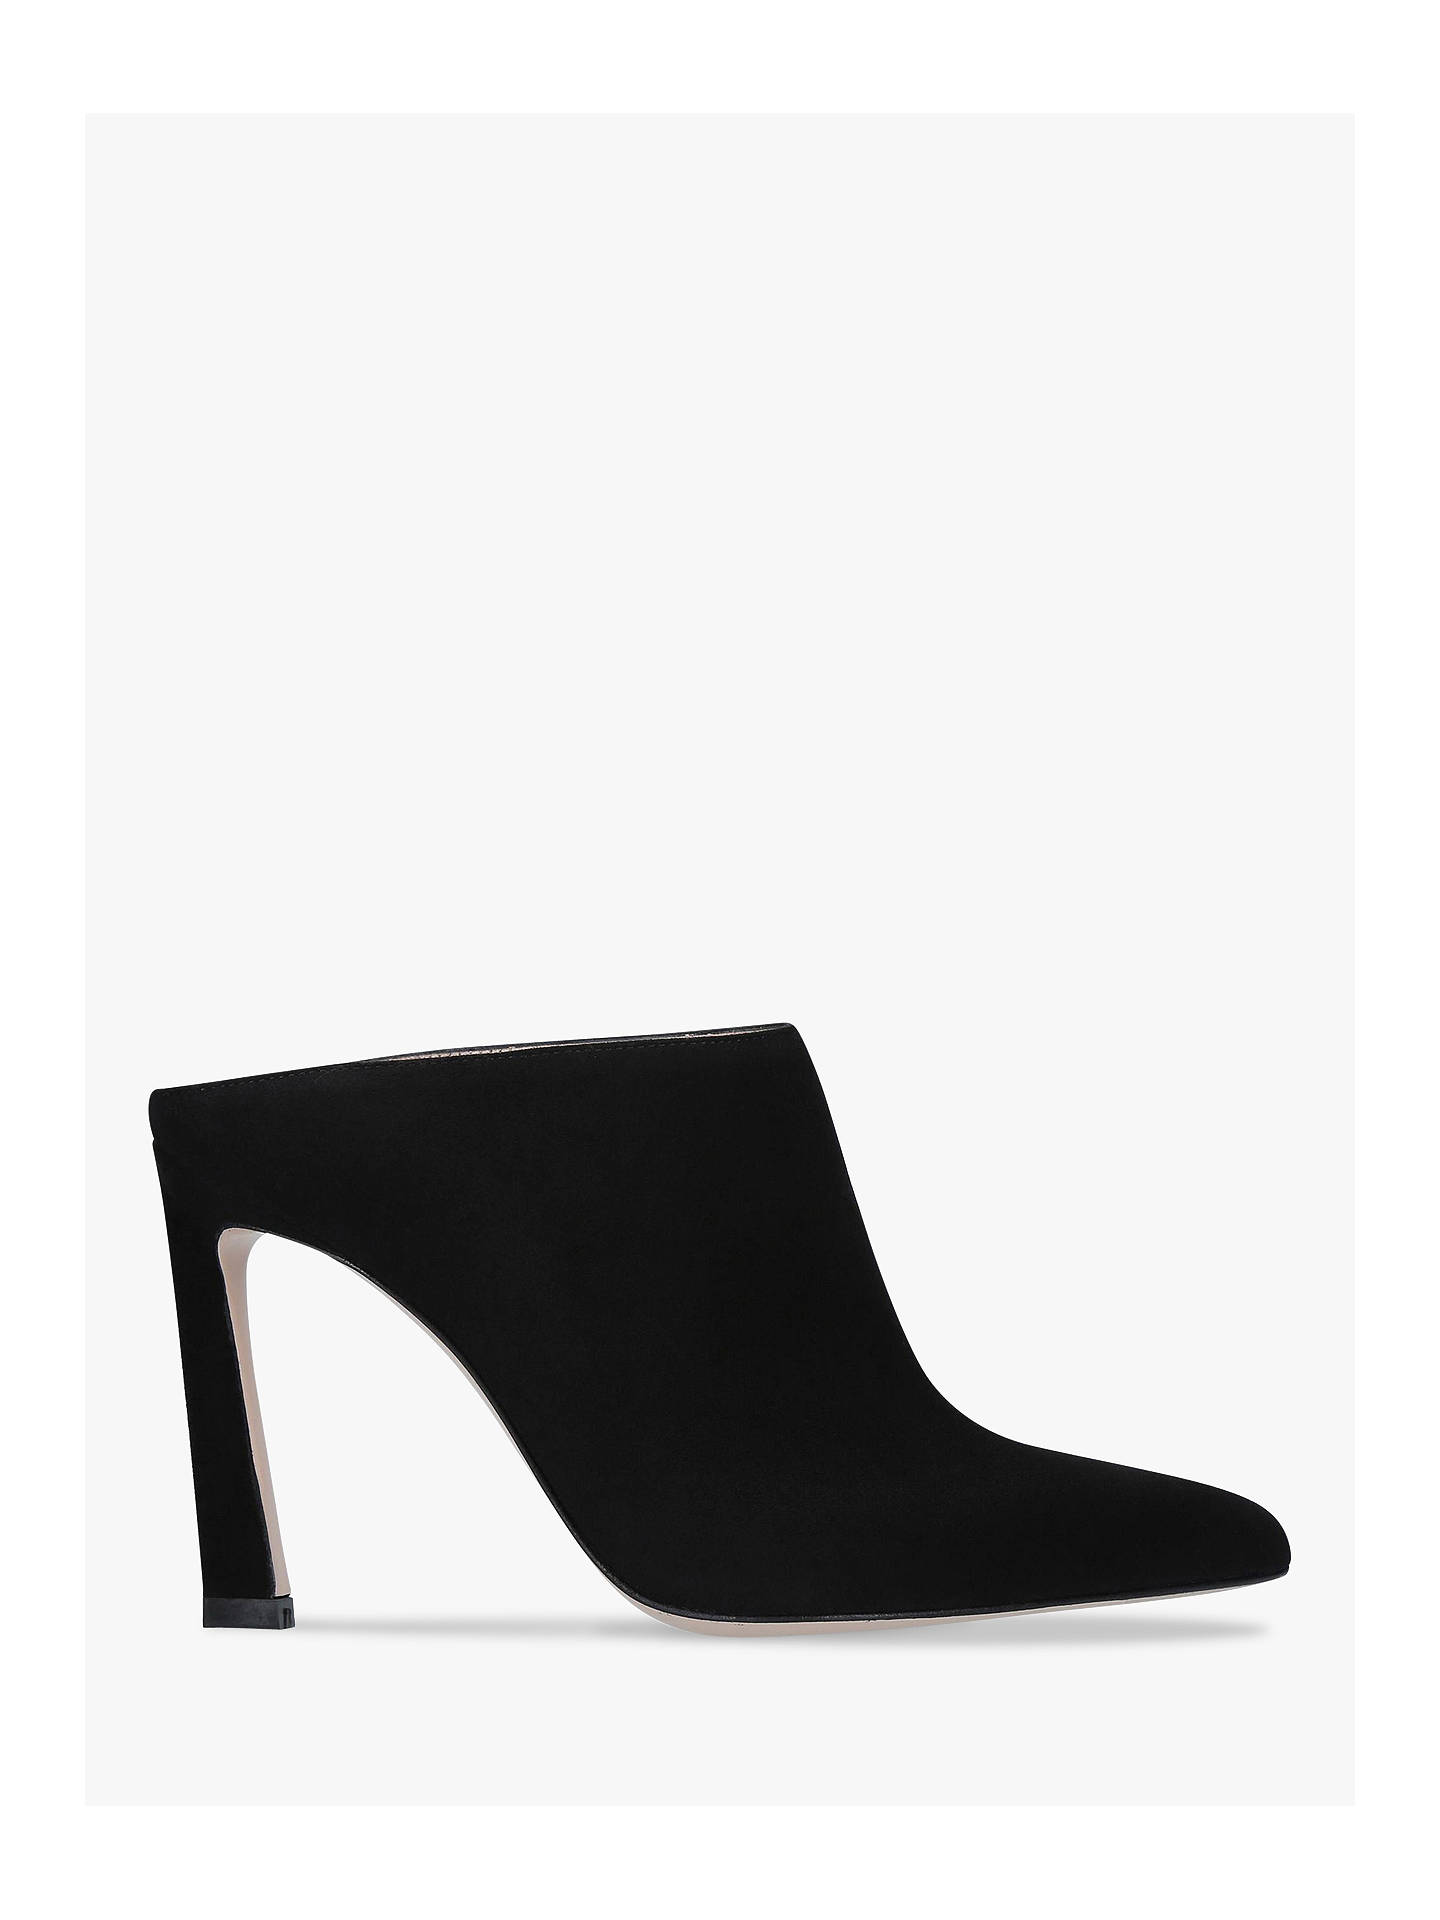 Buy Stuart Weitzman Camila Stiletto Heel Mules, Black Suede, 2 Online at johnlewis.com